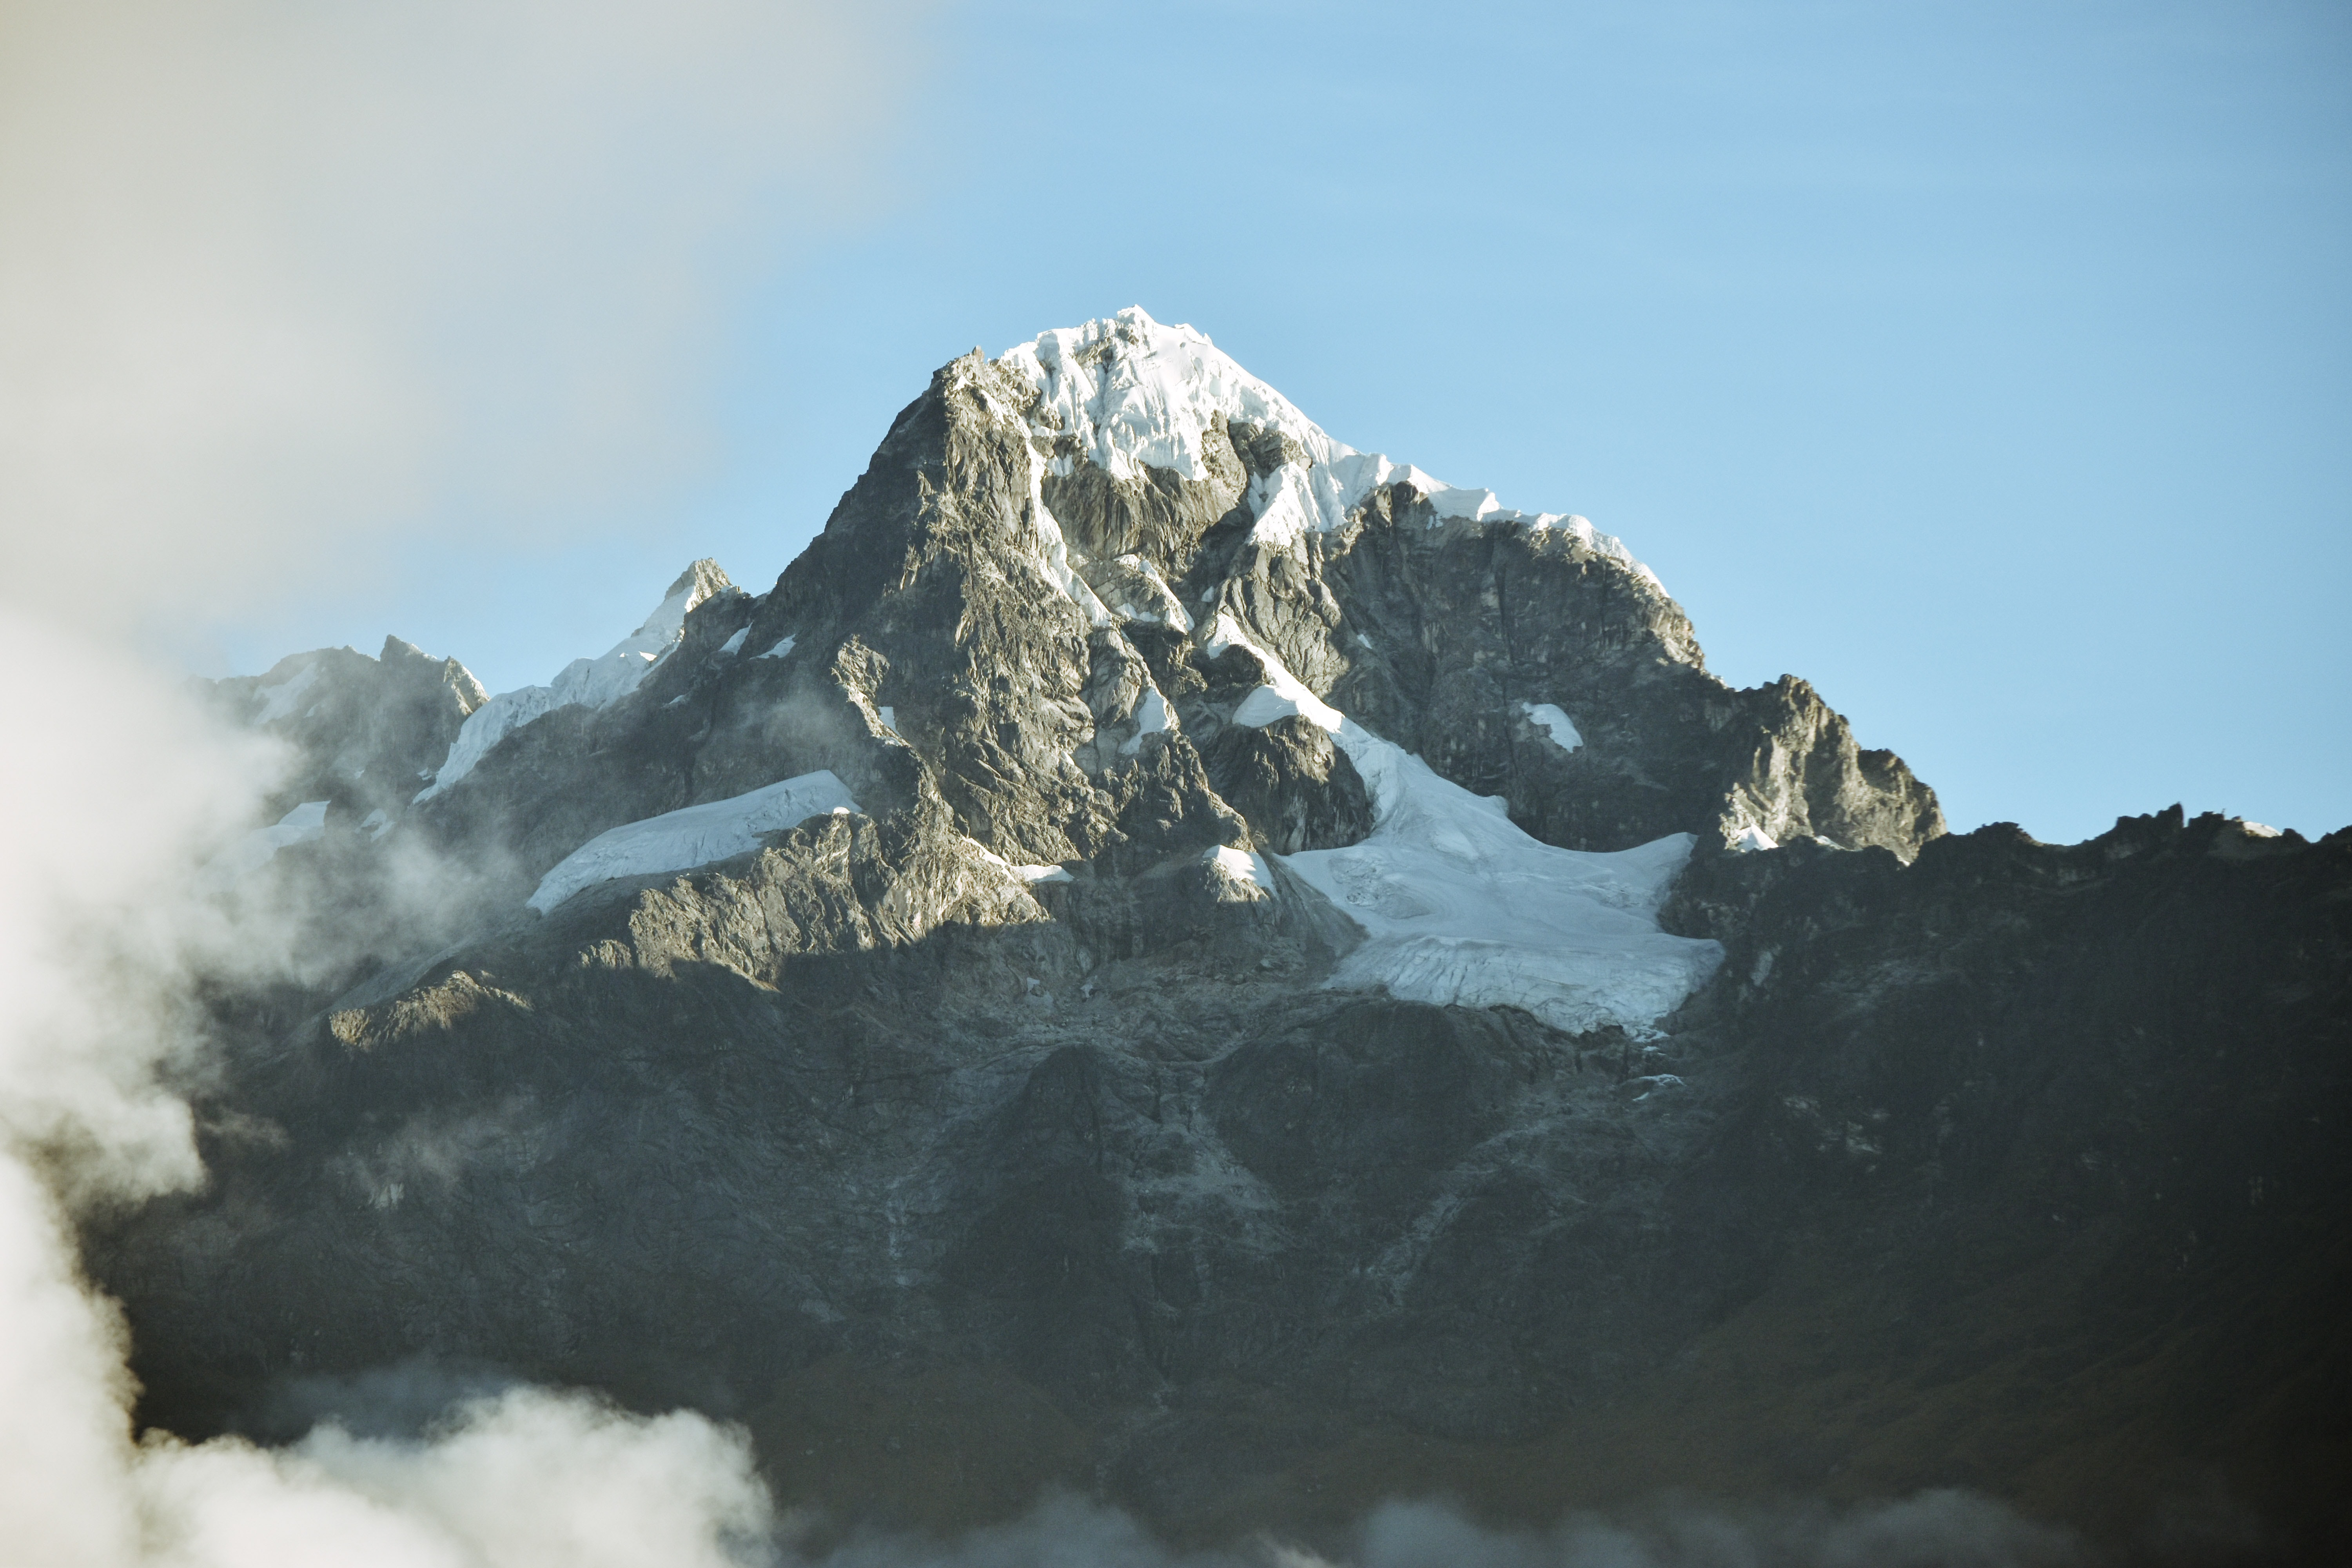 Snowy summit of a mountain in Inca Trail